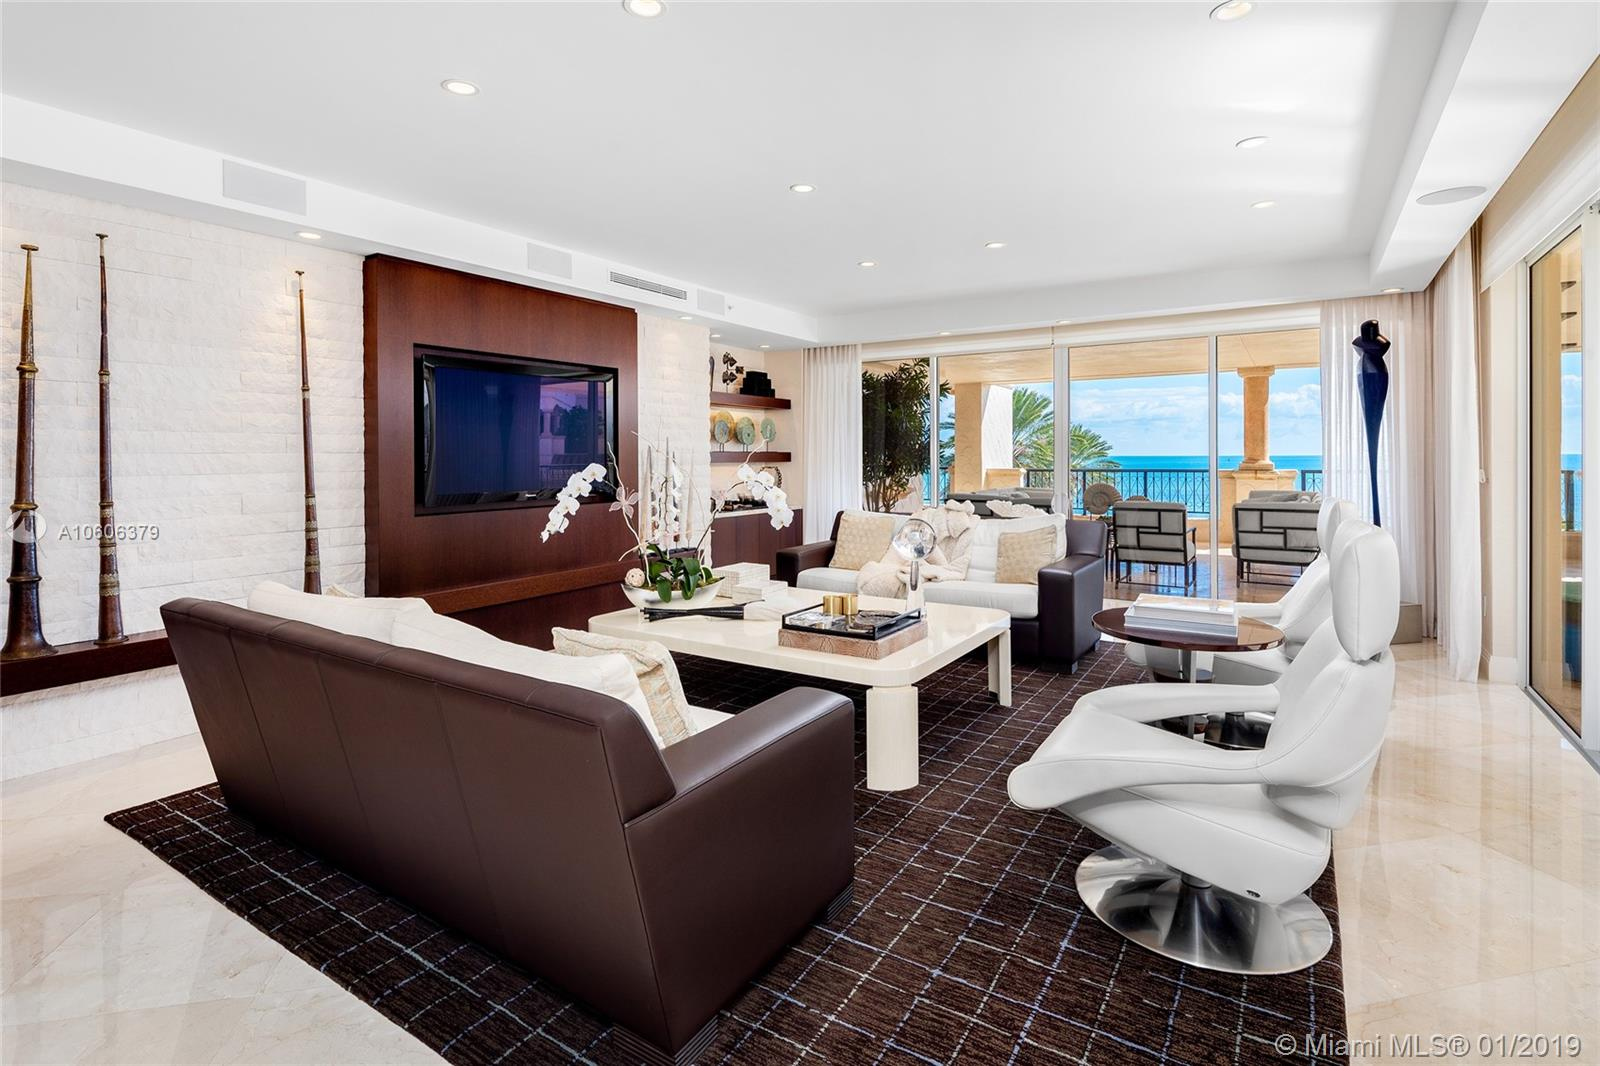 This 3BR/3+1BA Oceanside corner unit features 3,691 SF of immaculately designed interior spaces w/Crema Marfil marble floors, Venetian plaster walls & large ocean side wraparound terrace w/unobstructed sunrise beach & Atlantic Ocean views. Spacious open living room w/a beautiful onyx bar & dining room surrounded by walls of glass that stream natural lighting. An amazing gourmet kitchen sports top of the line Miele & Sub-Zero appliances, custom Snaidero cabinetry & a large breakfast area. The sumptuous principal suite offers an office space, direct terrace access & stunning principal bath w/limestone floors, walk-in rain shower & sunken spa tub. The other two bedrooms each with en-suite bathrooms & share a terrace w/Fisher Island views. 5-star Fisher amenities complete this offering.